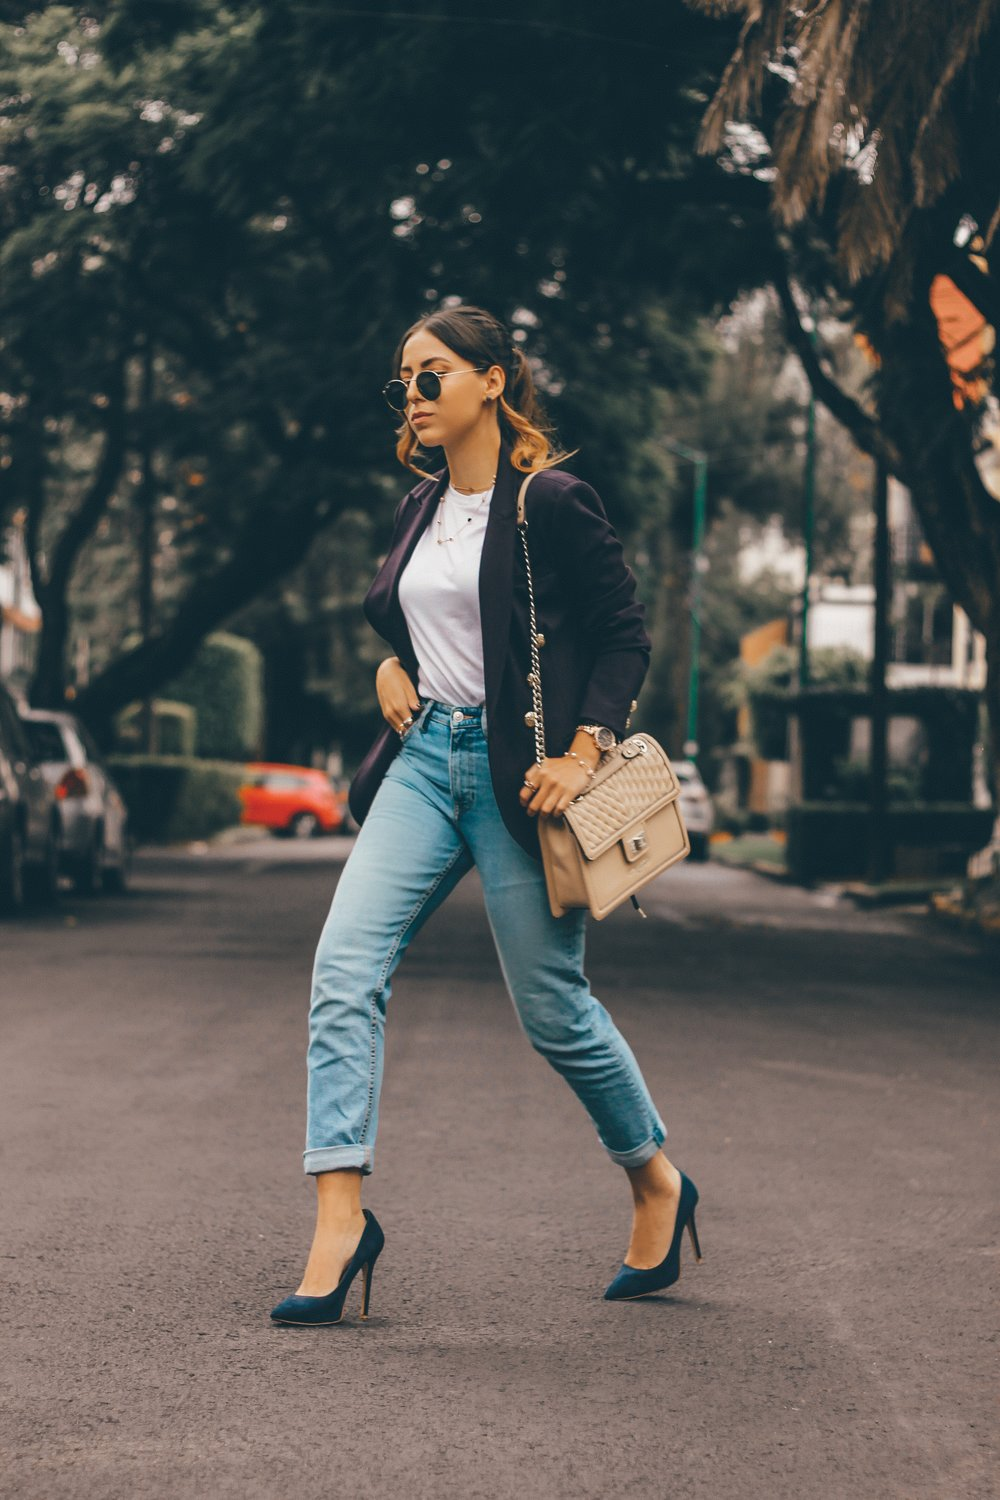 mom-jeans-pointed-heels-outfit-style-ideas